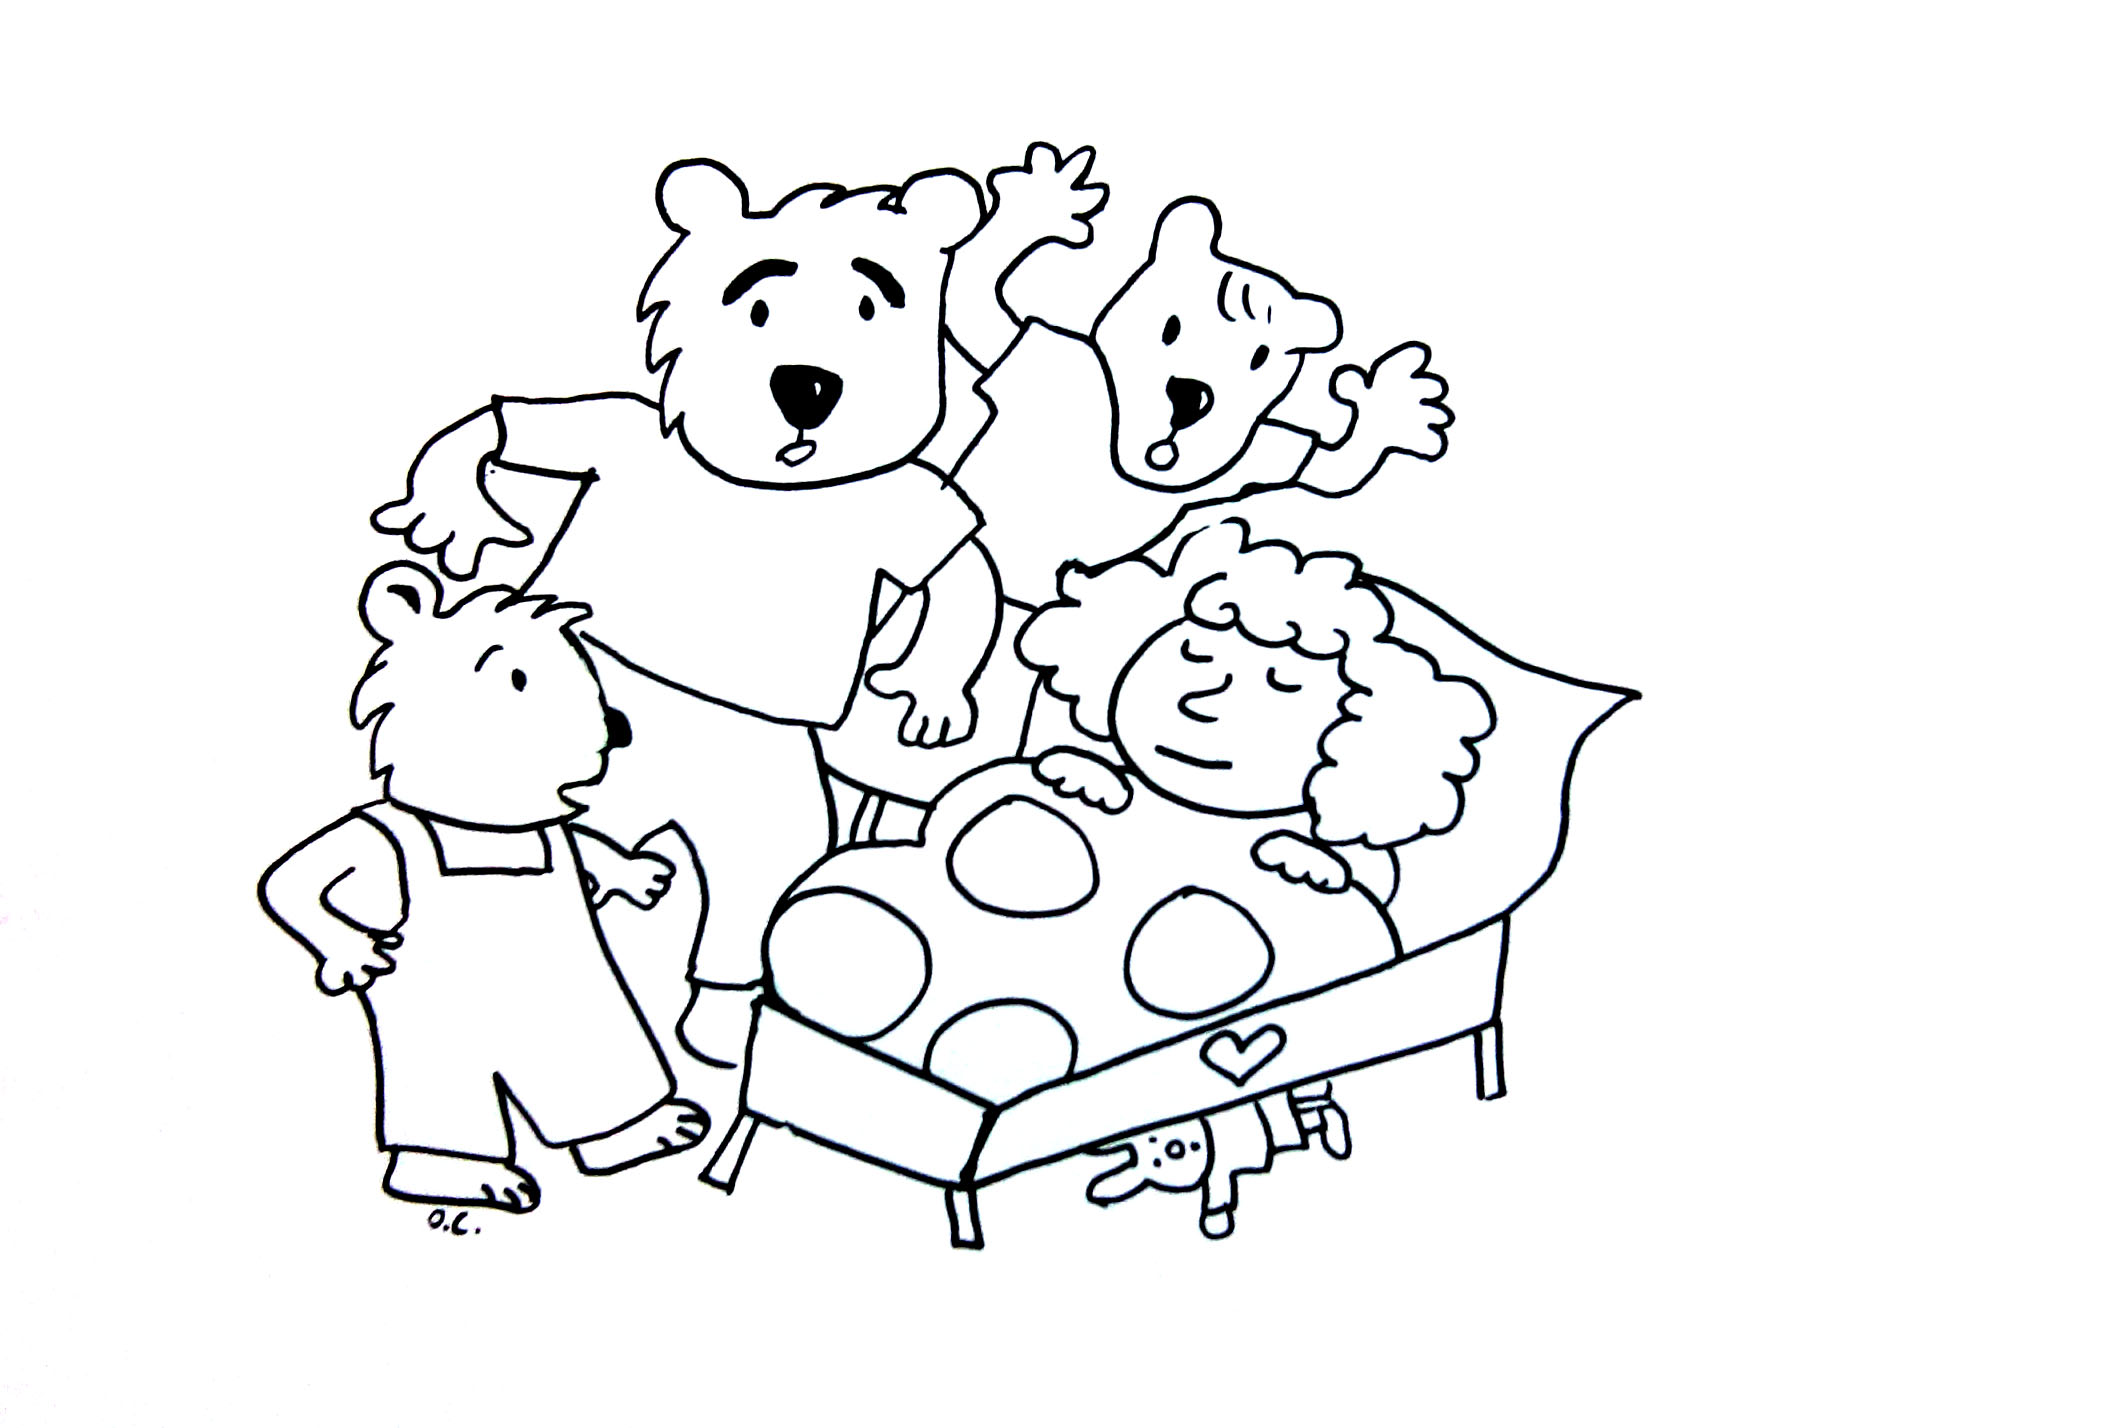 Colouring pages goldilocks and three bears - Goldilocks And The Three Bears Simple Printable For Young Kids From The Gallery